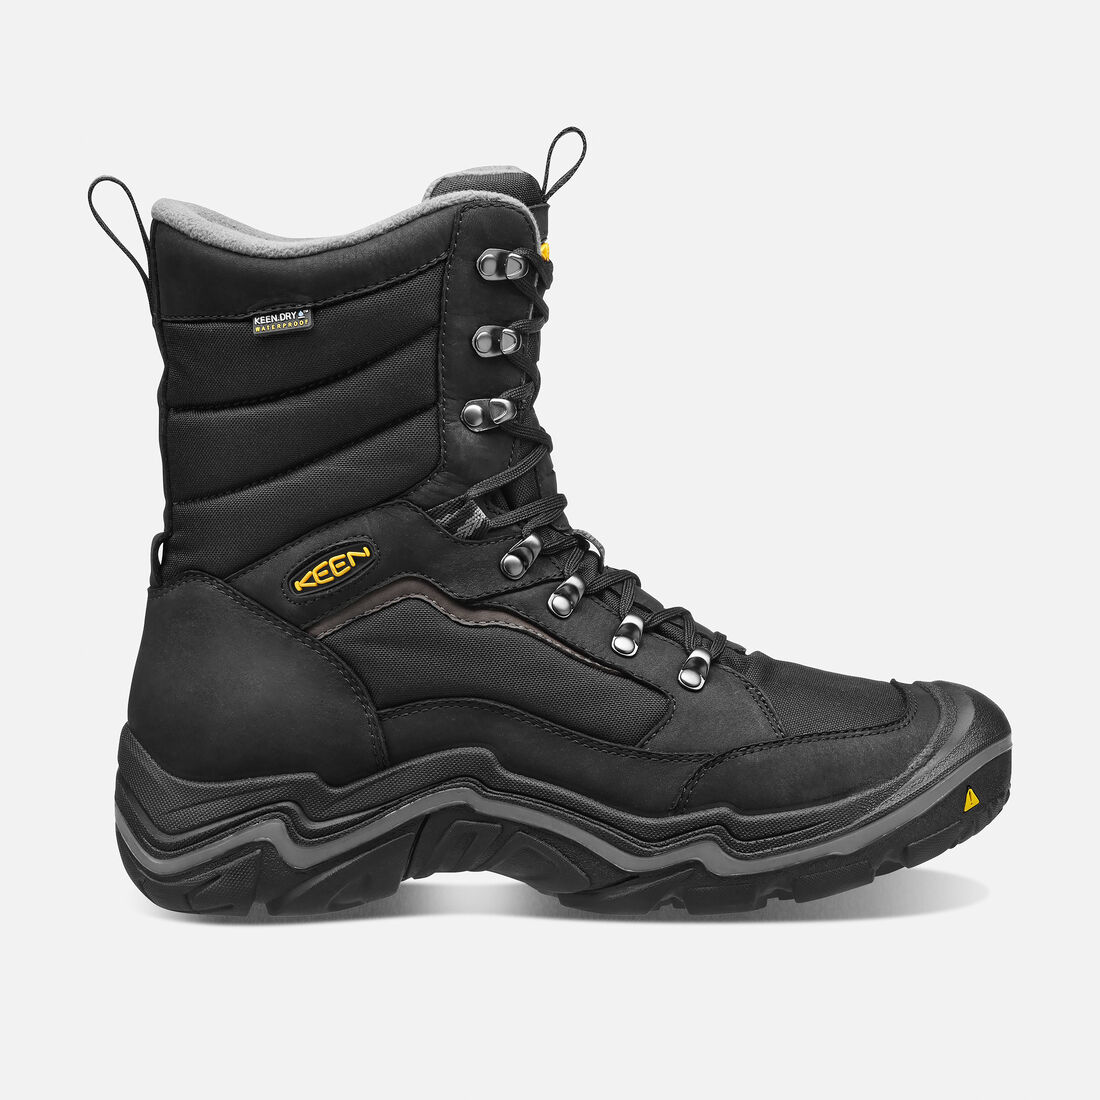 Men's Durand Polar Waterproof Boot in Black/Gargoyle - large view.